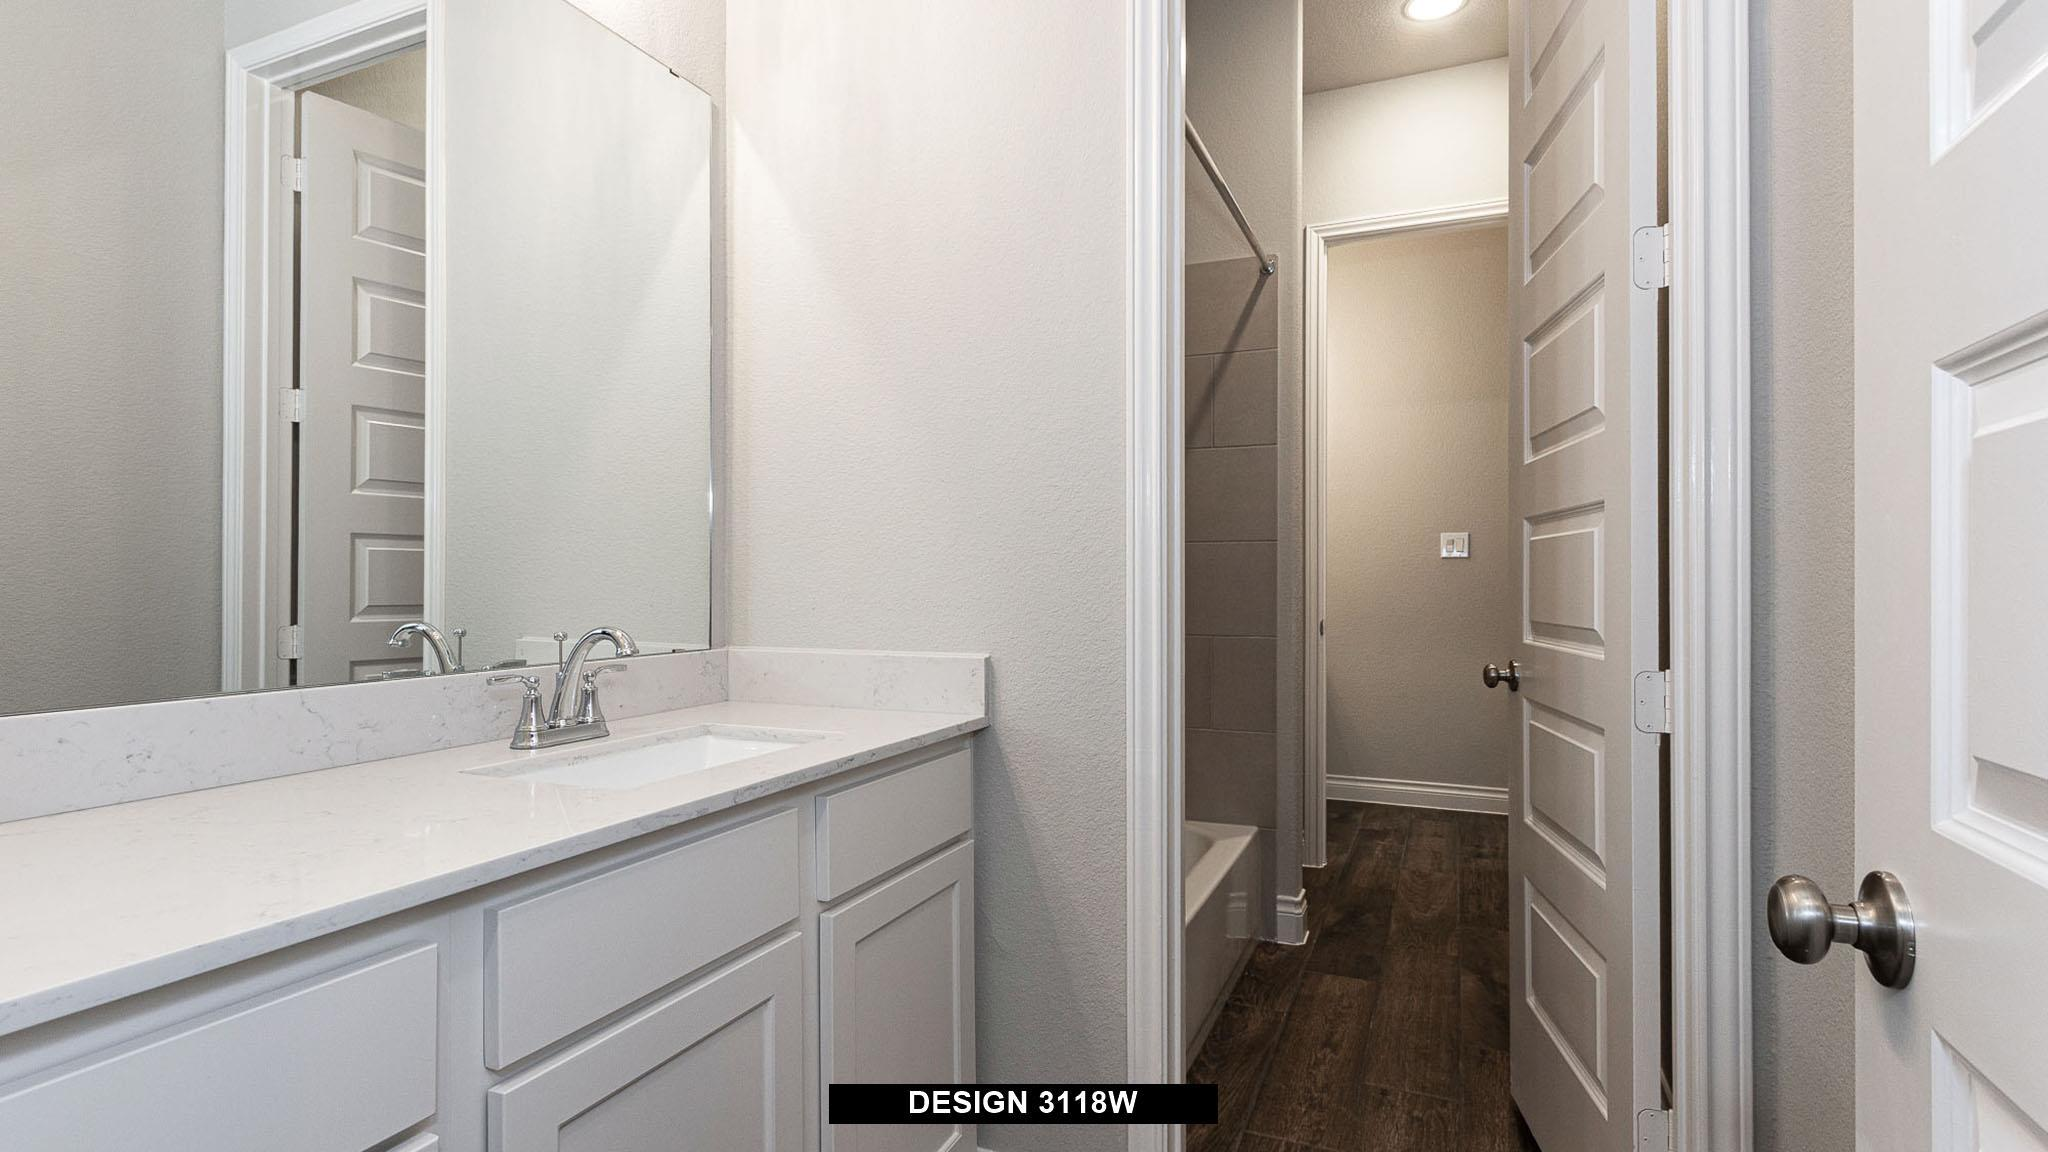 Bathroom featured in the 3118W By Perry Homes in Houston, TX